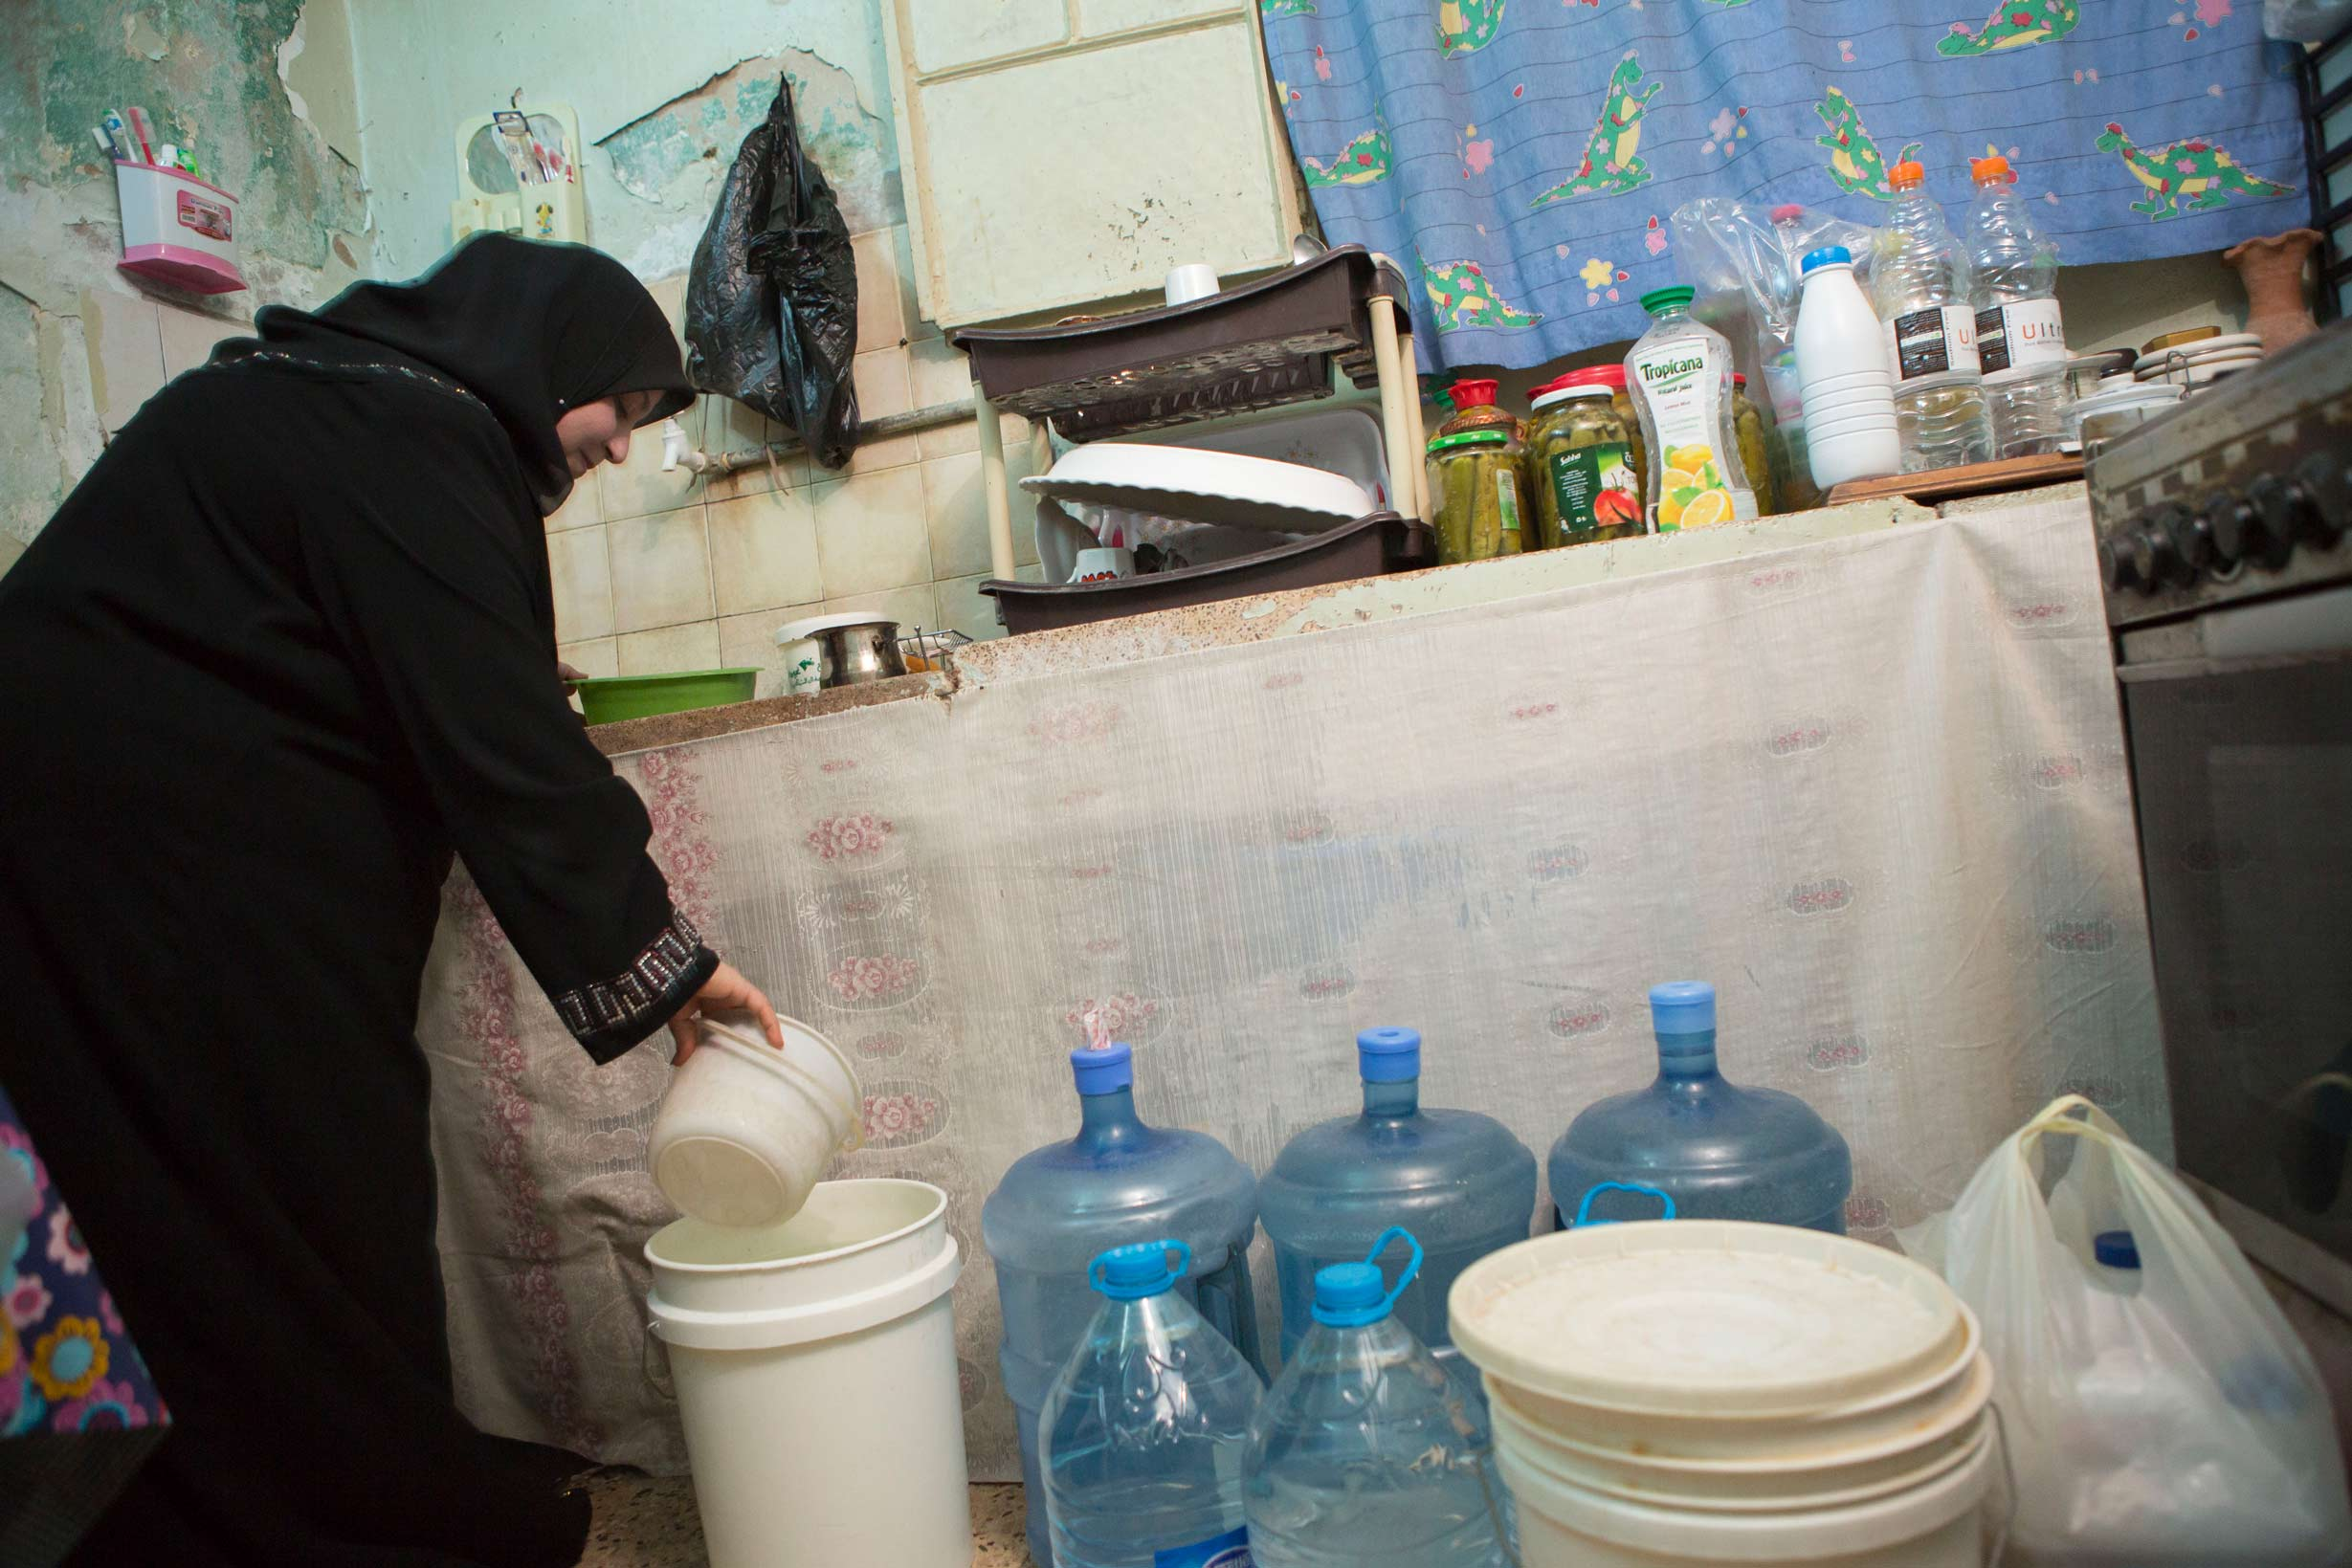 Mrs. Um Yazan Omran, a resident of Zarqa, Jordan, experiences water shortages. Here she is seen in her kitchen with several jugs of purchased water which she uses for the household.